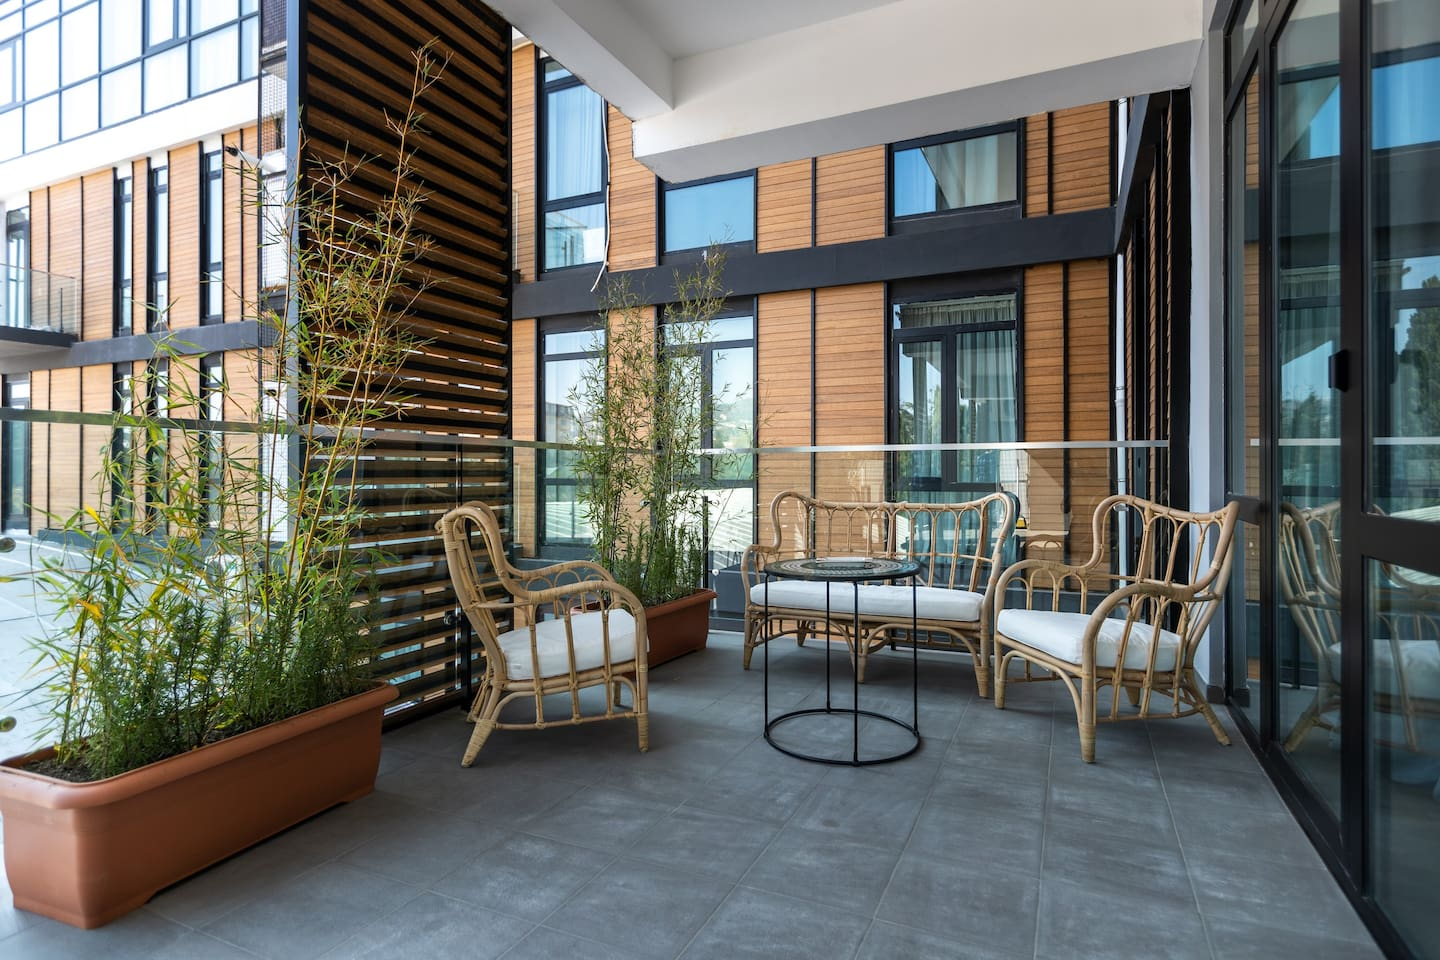 Beautiful and spacious terrace where you can enjoy morning coffee